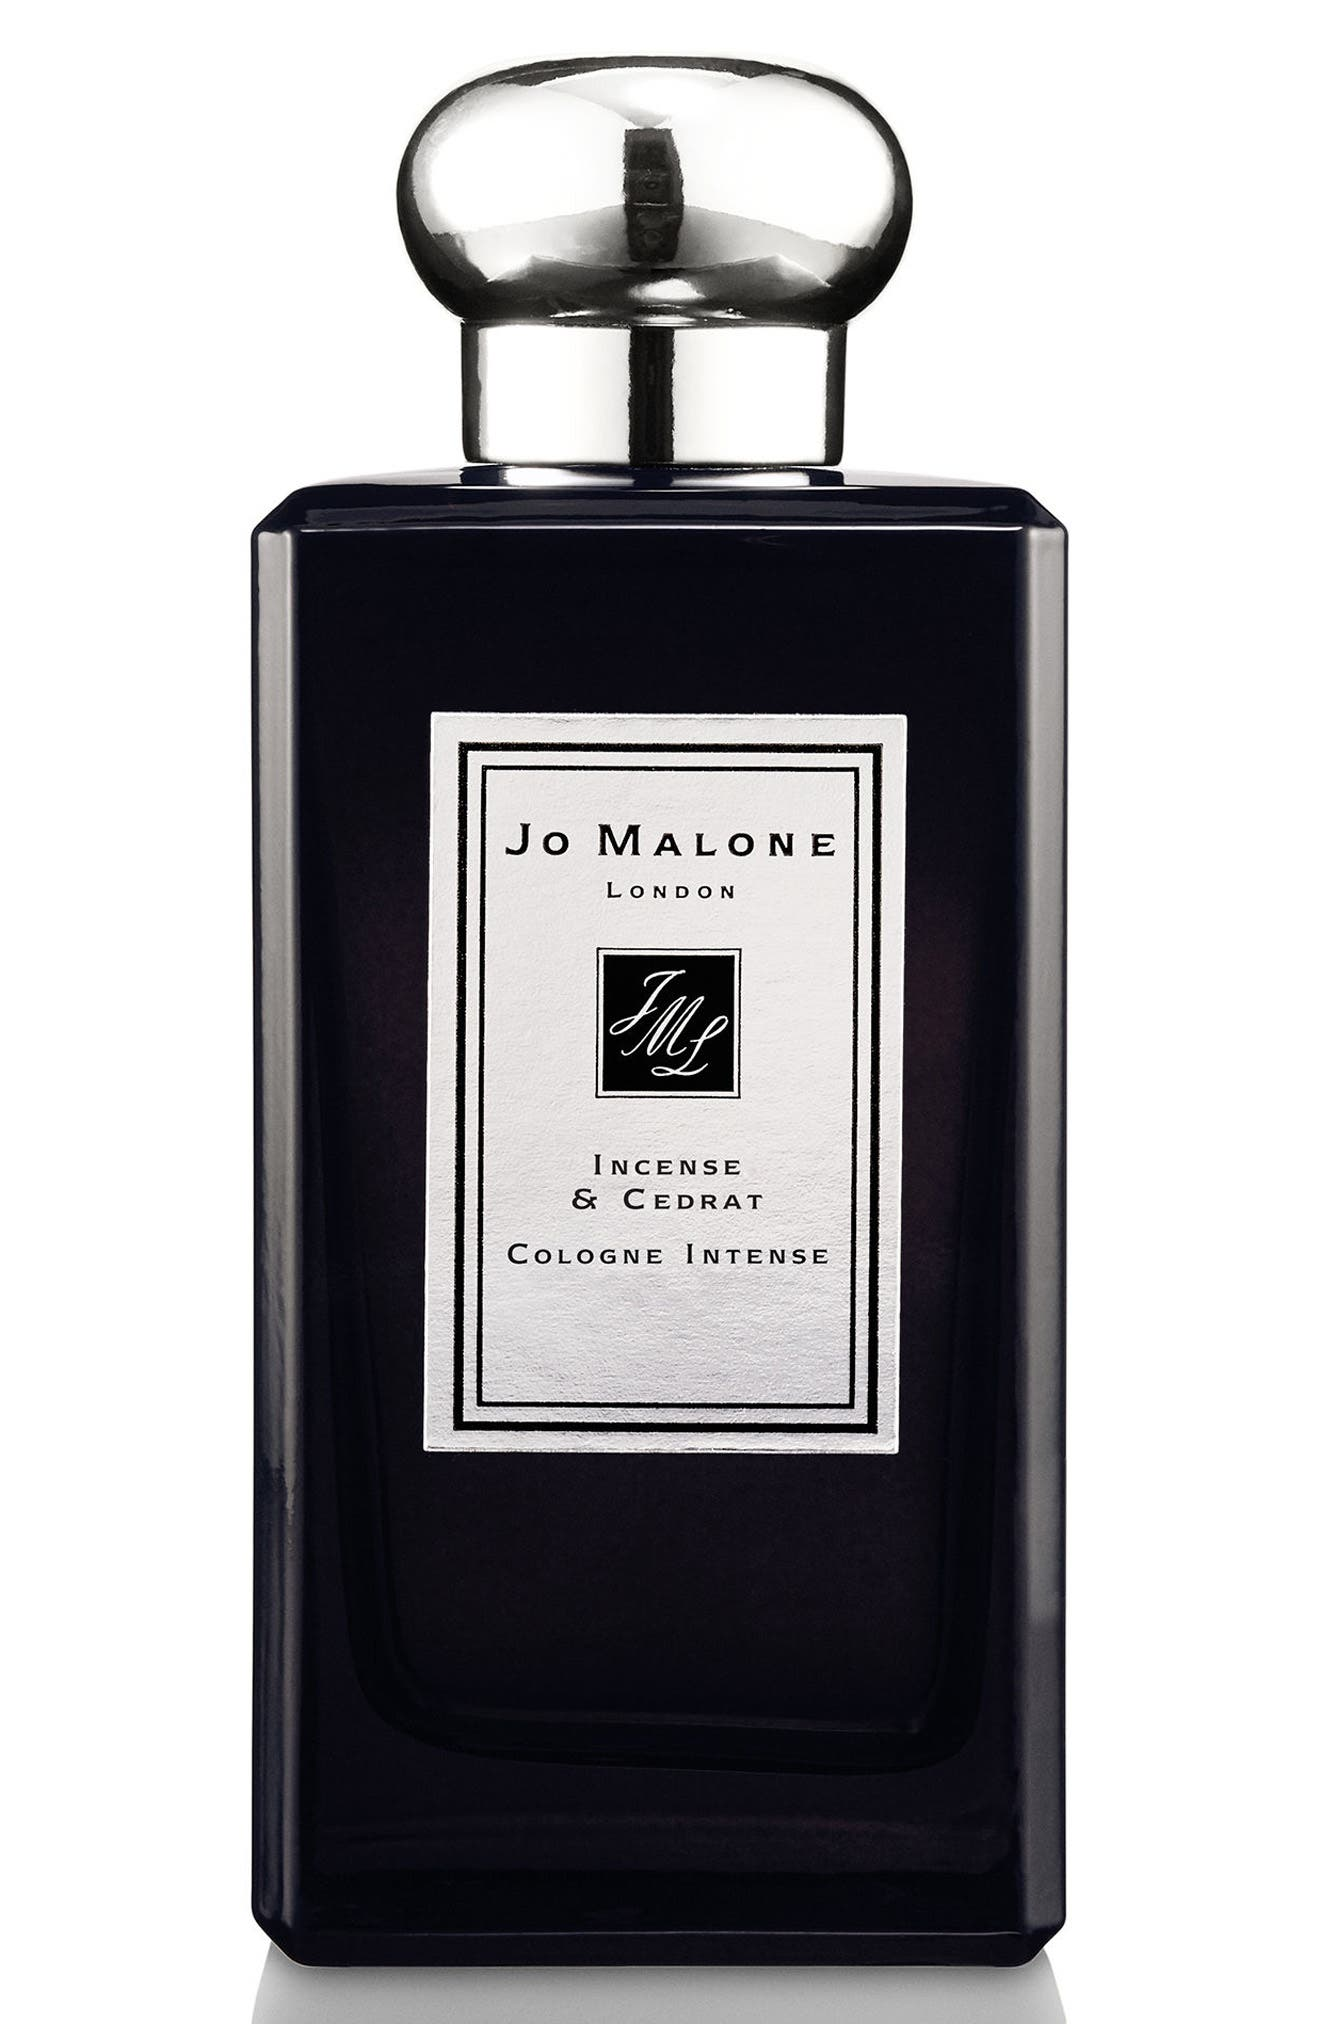 Jo Malone London™ 'Incense & Cedrat' Cologne